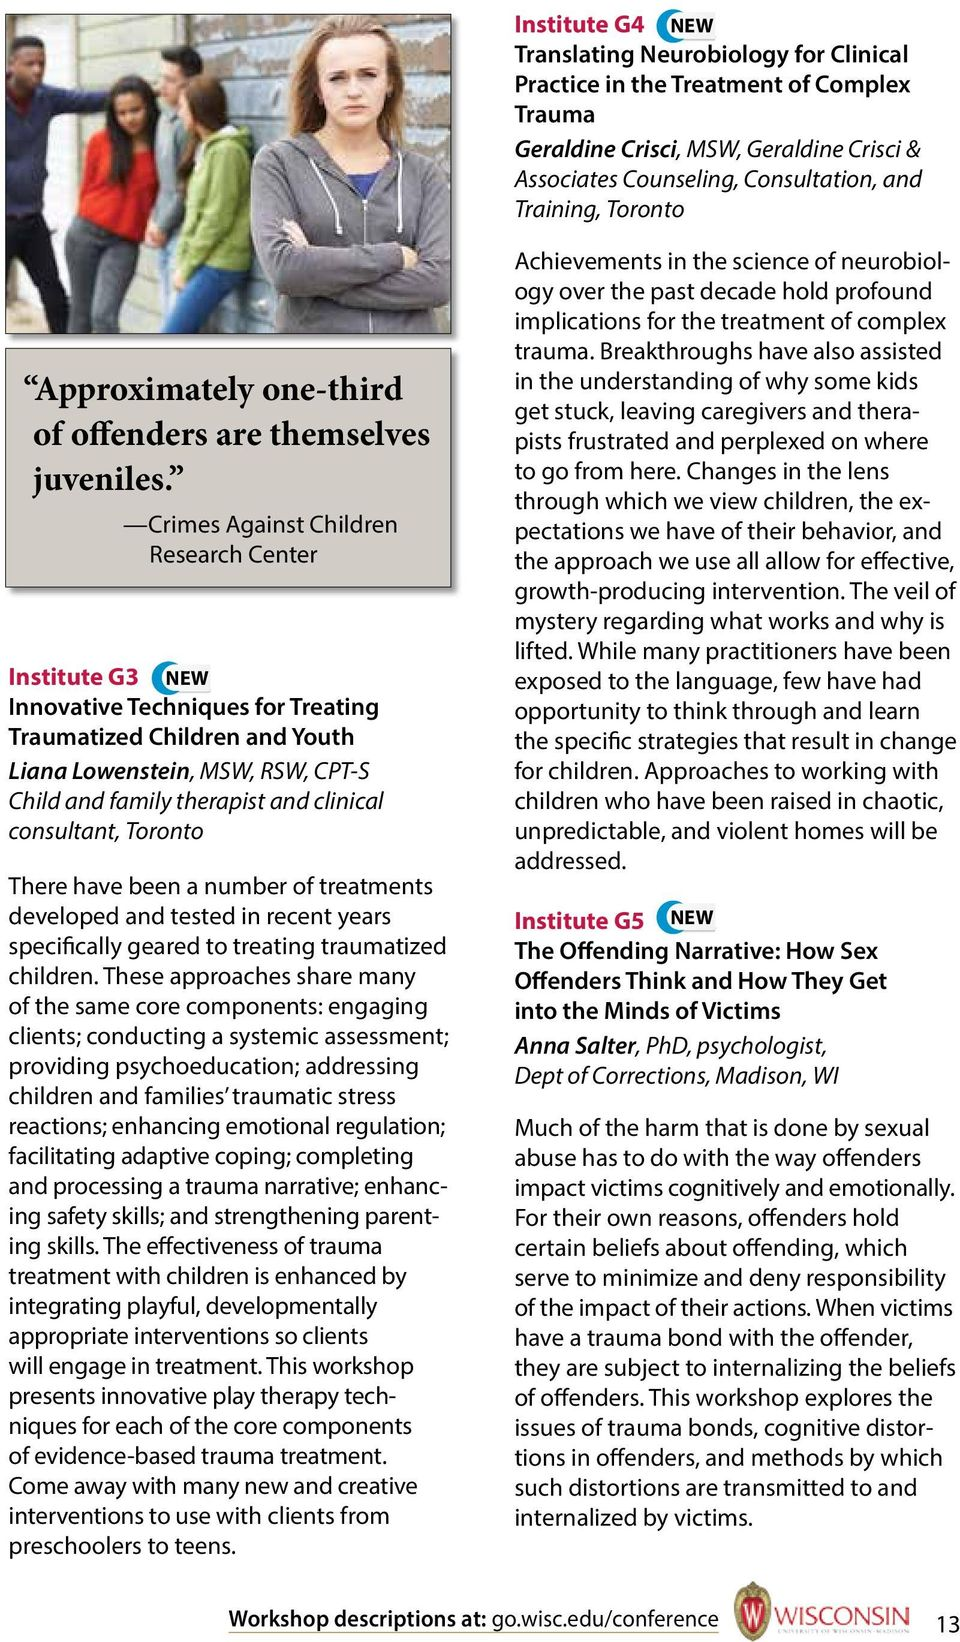 Crimes Against Children Research Center Institute G3 NEW Innovative Techniques for Treating Traumatized Children and Youth Liana Lowenstein, MSW, RSW, CPT-S Child and family therapist and clinical